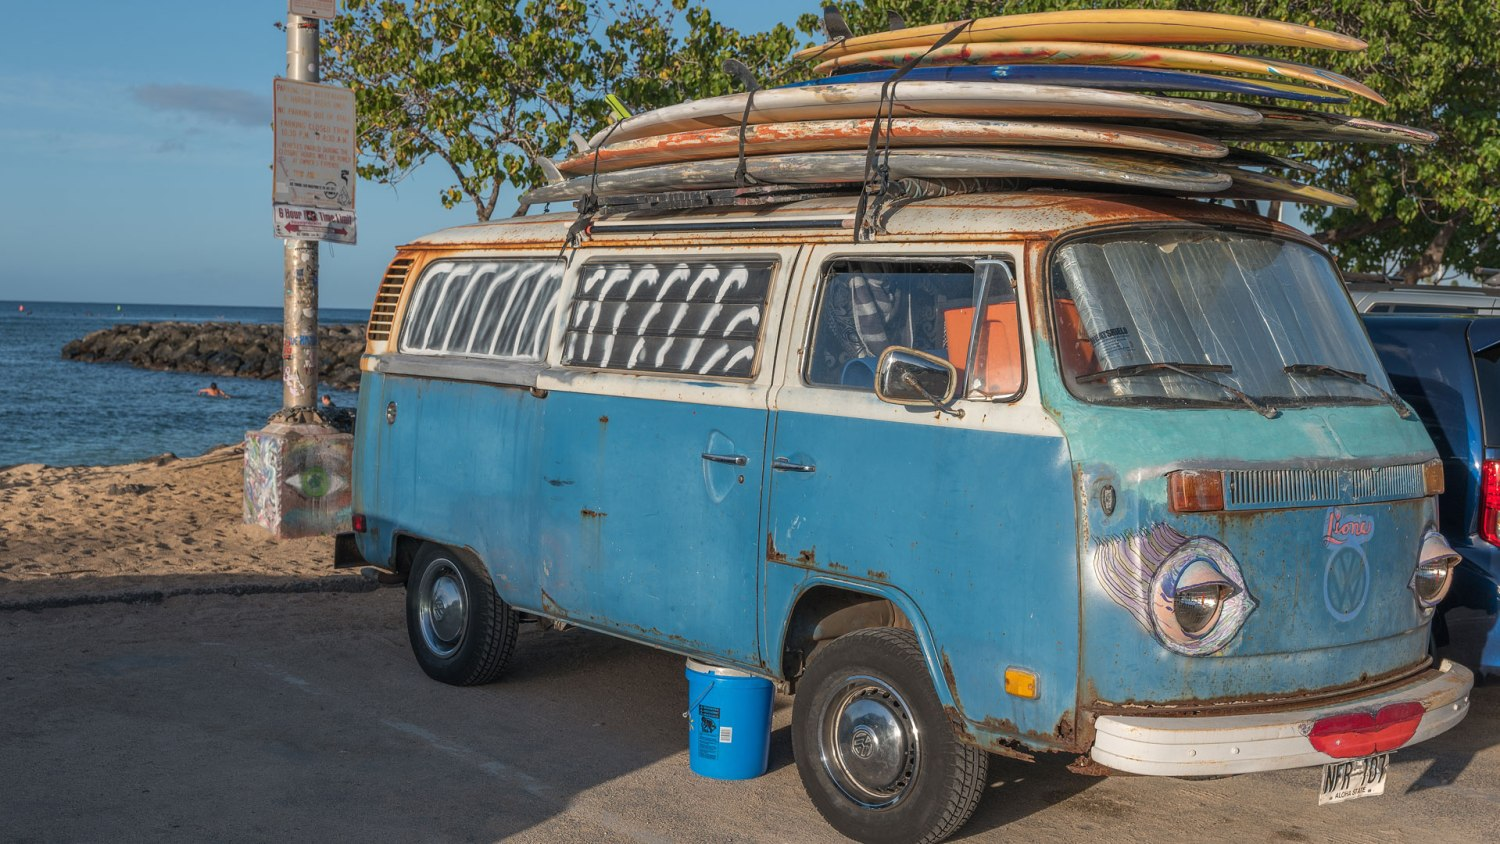 Most surfboards stacked on a car